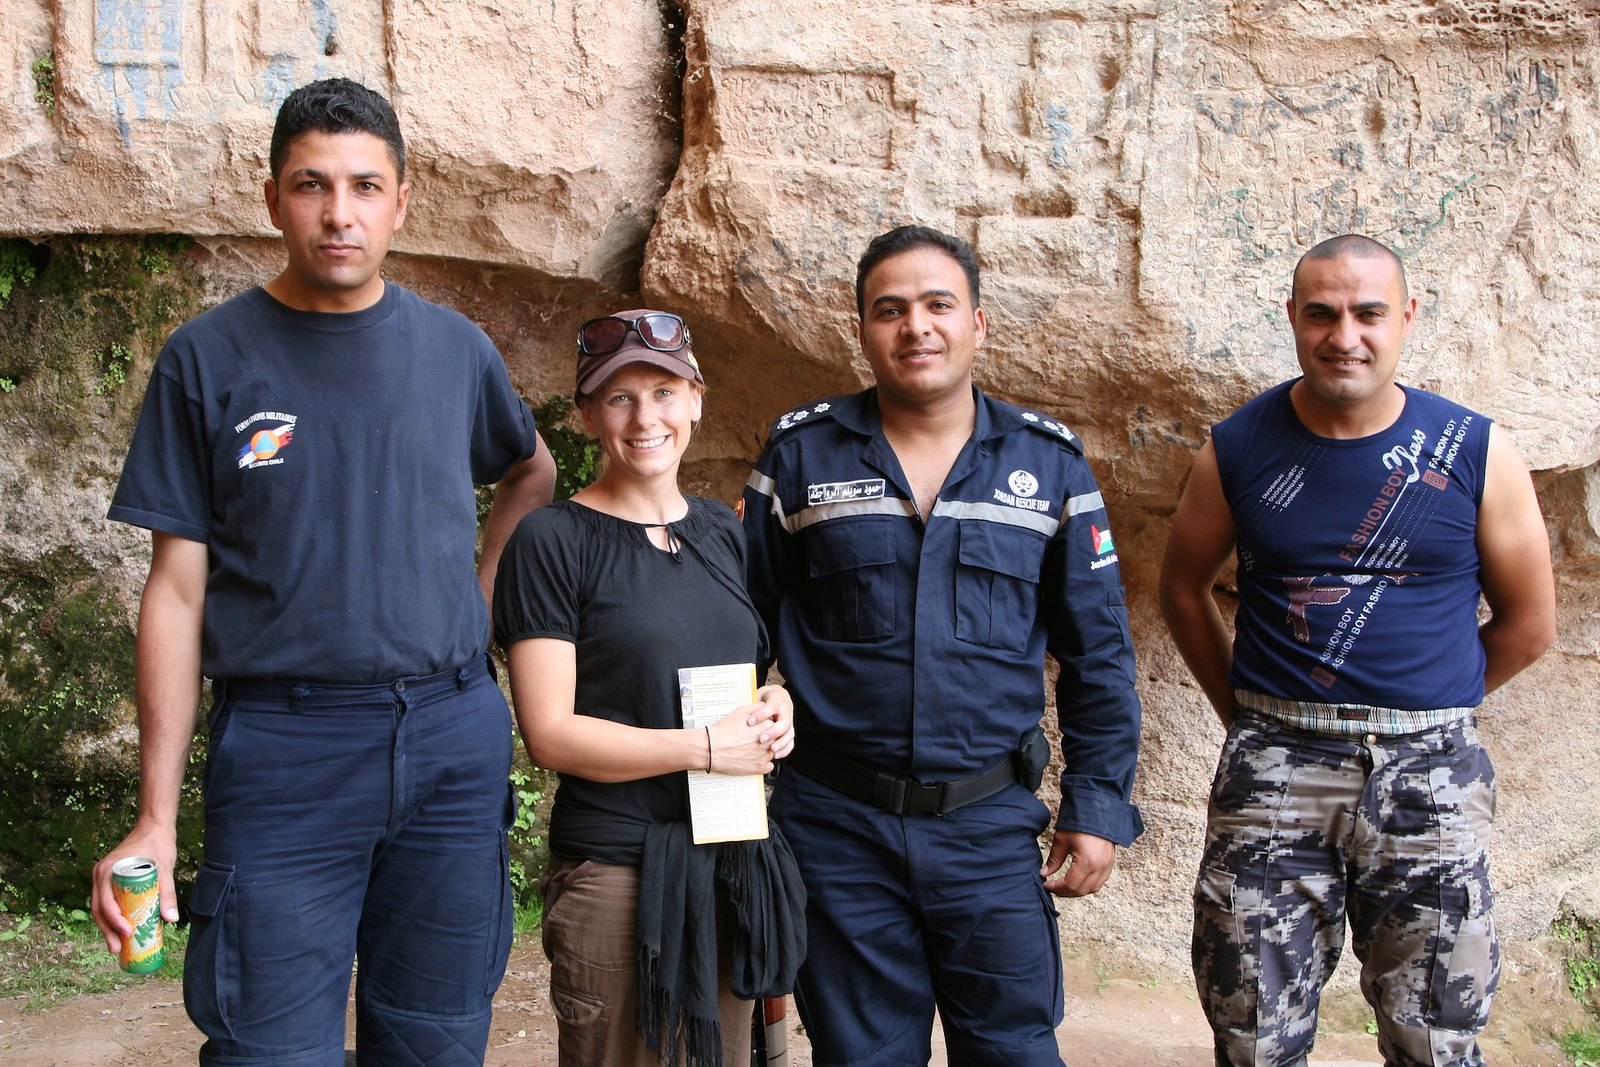 The Jordan Search and Rescue Team